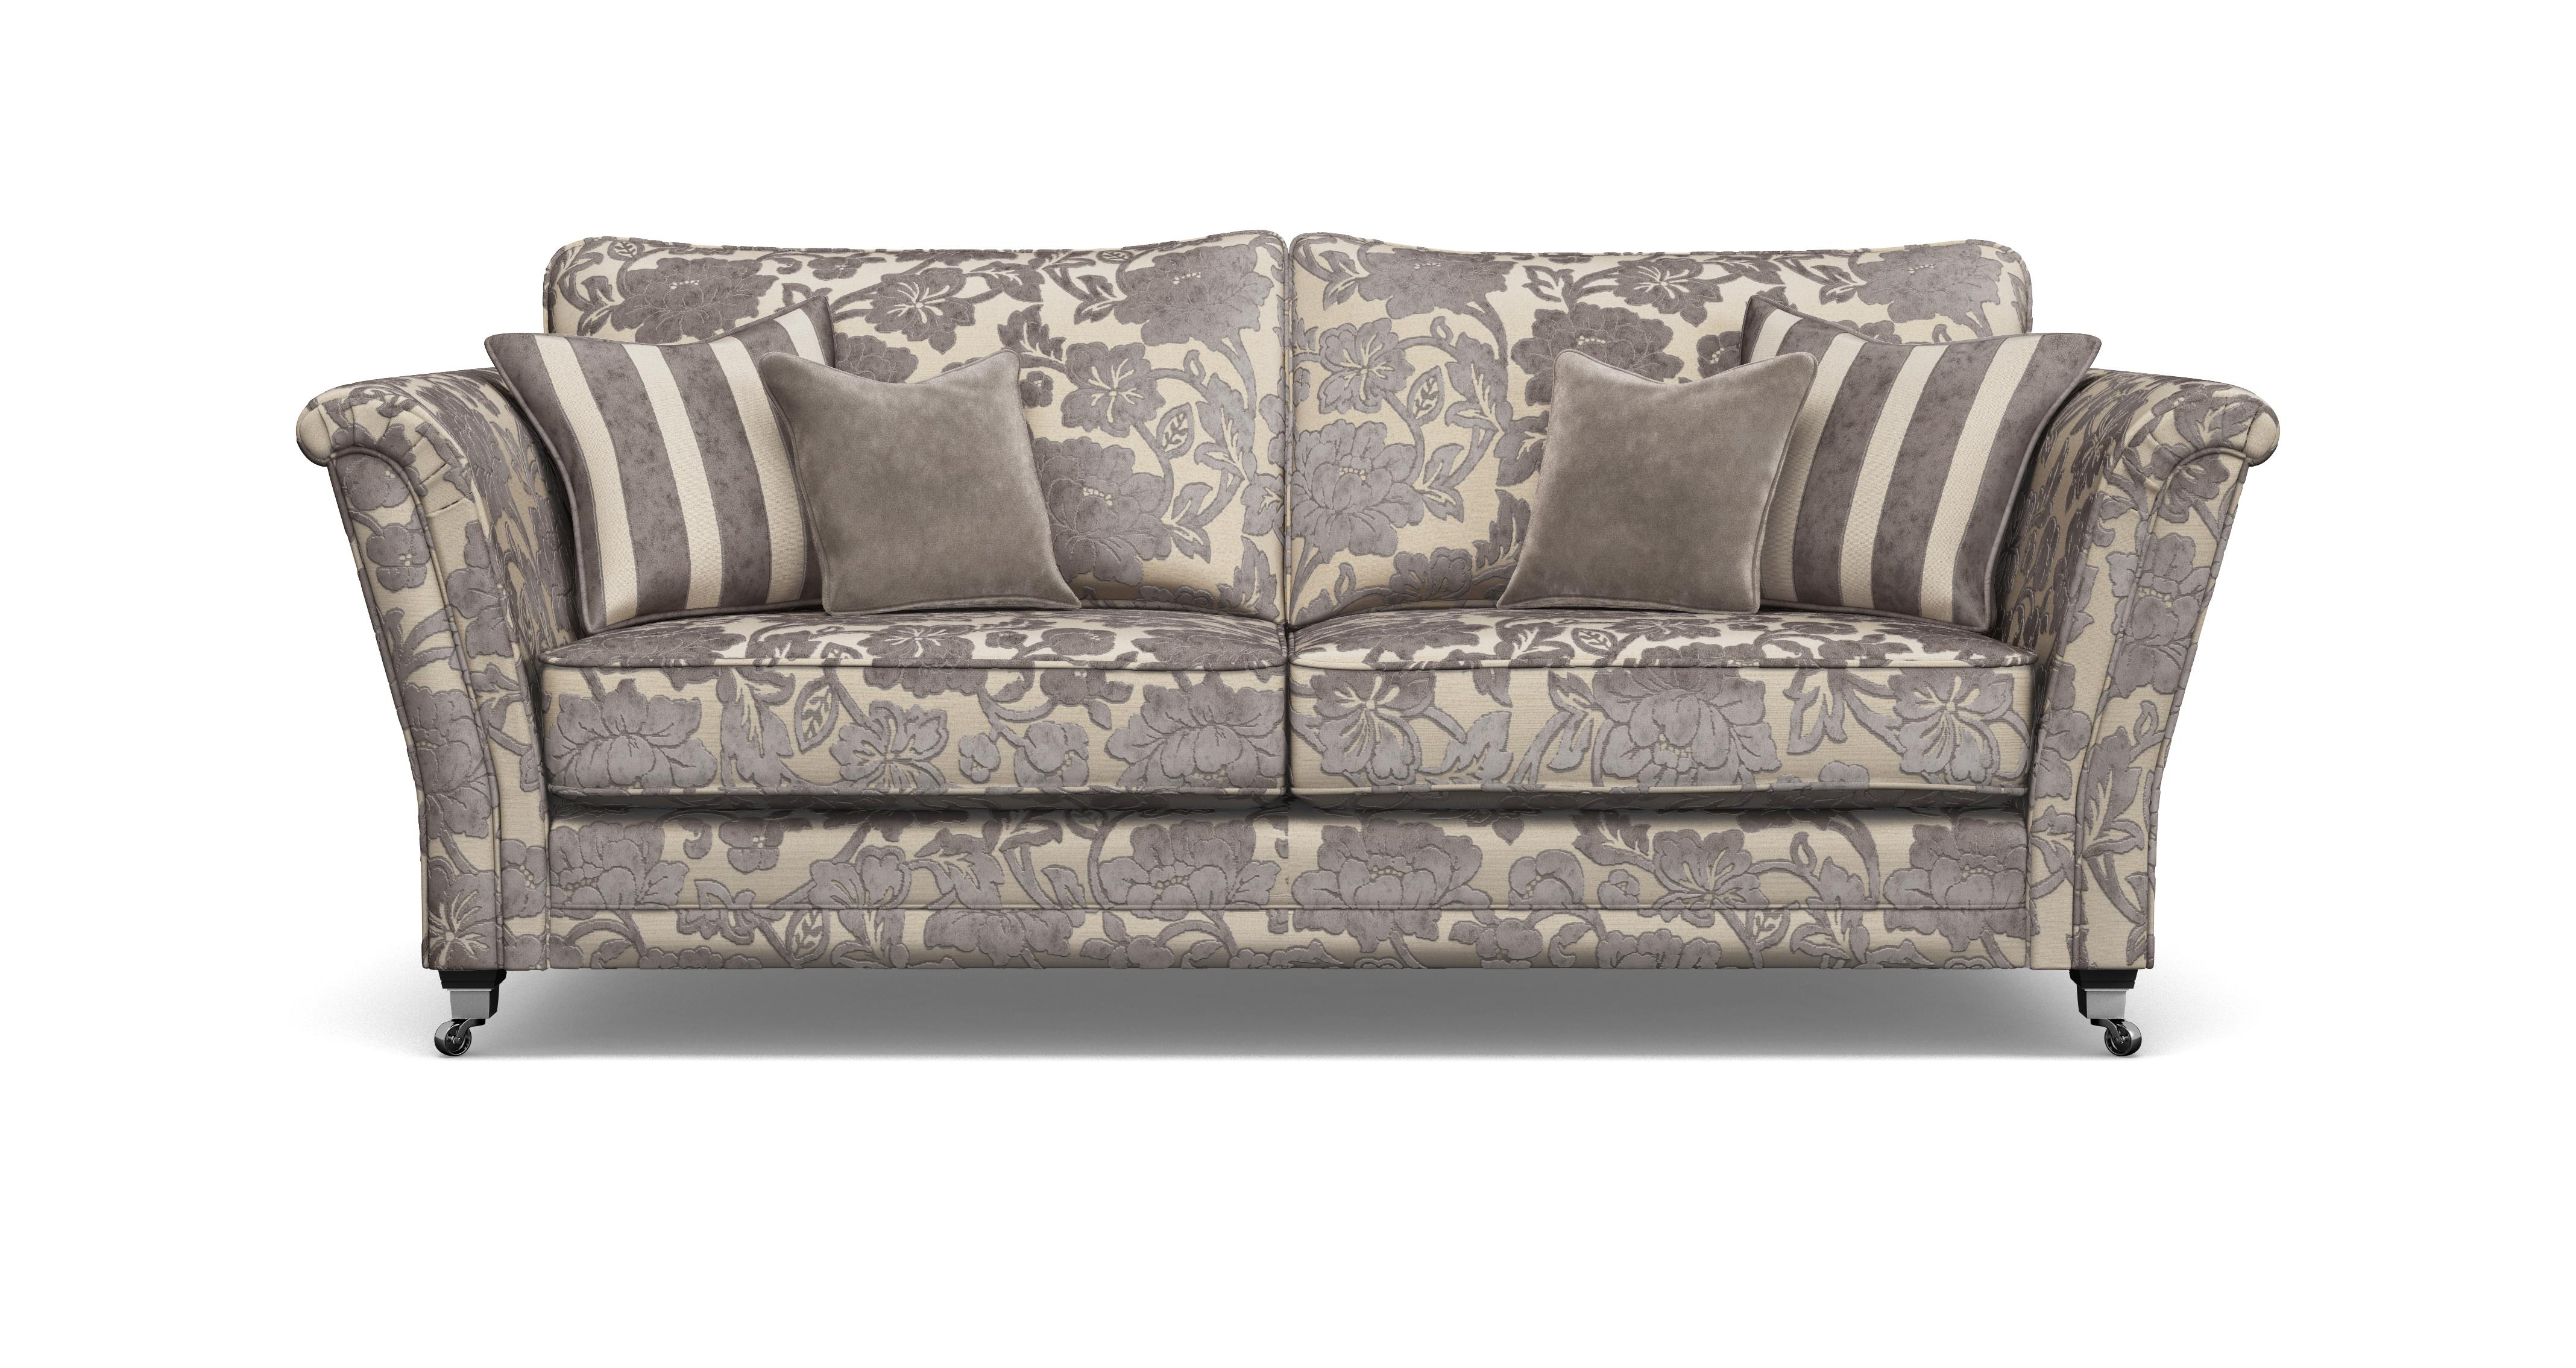 striped fabric sofas uk apartment size sofa with chaise dfs hogarth mink floral 3 seater and 2